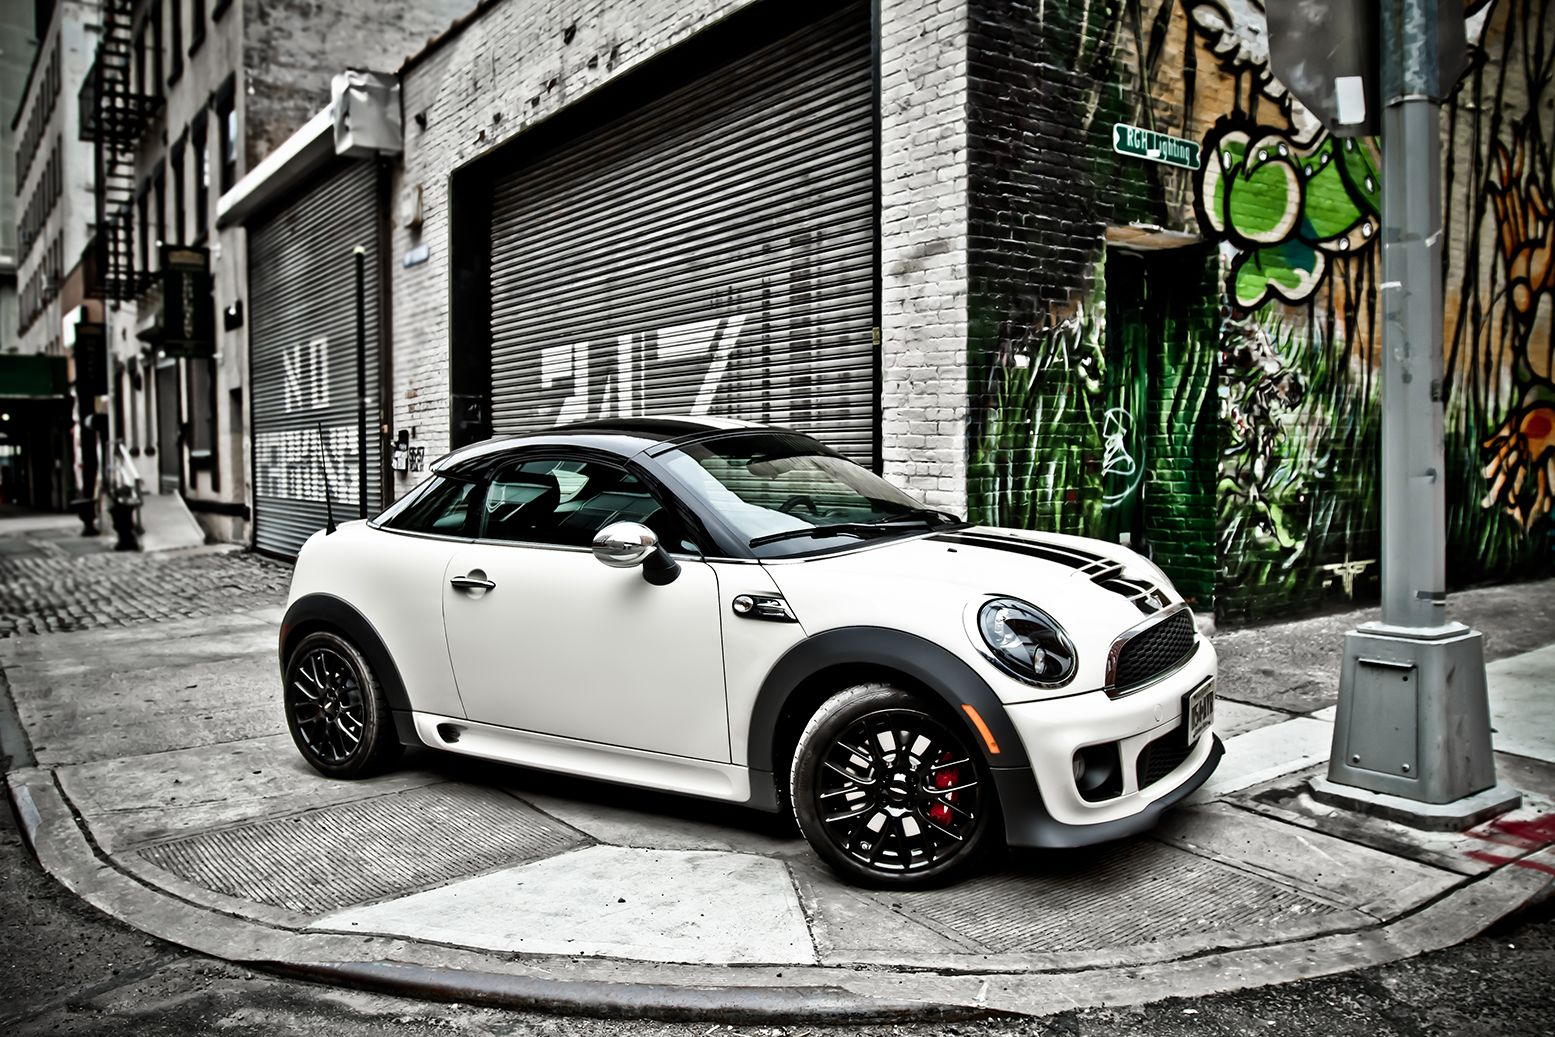 Auto Sales Near Me >> The 25+ best Mini coupe ideas on Pinterest | Mini cooper paceman, Mini cooper models and Mini ...